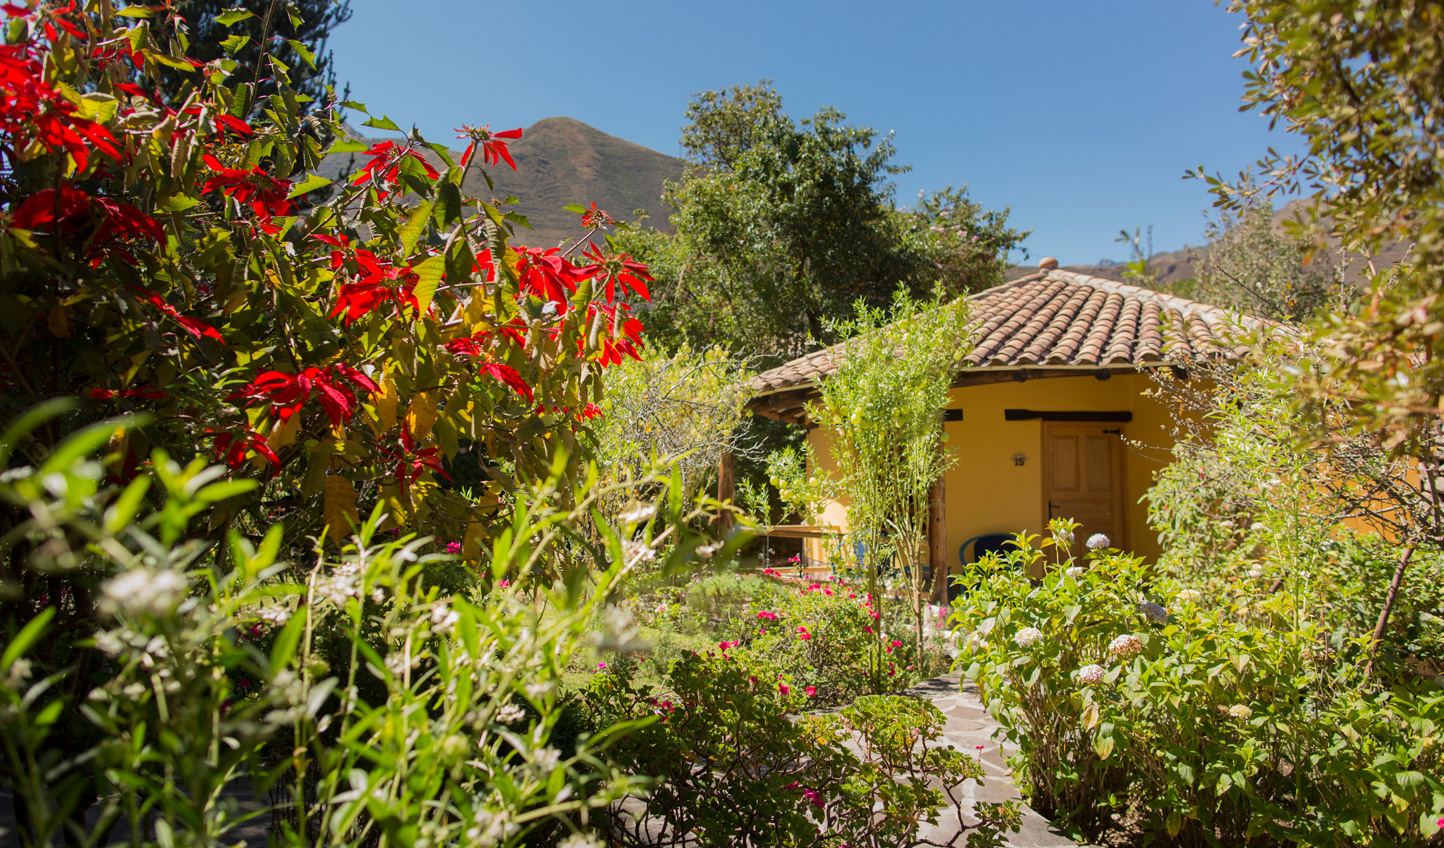 Retreat to your casita, ensconced in the gardens